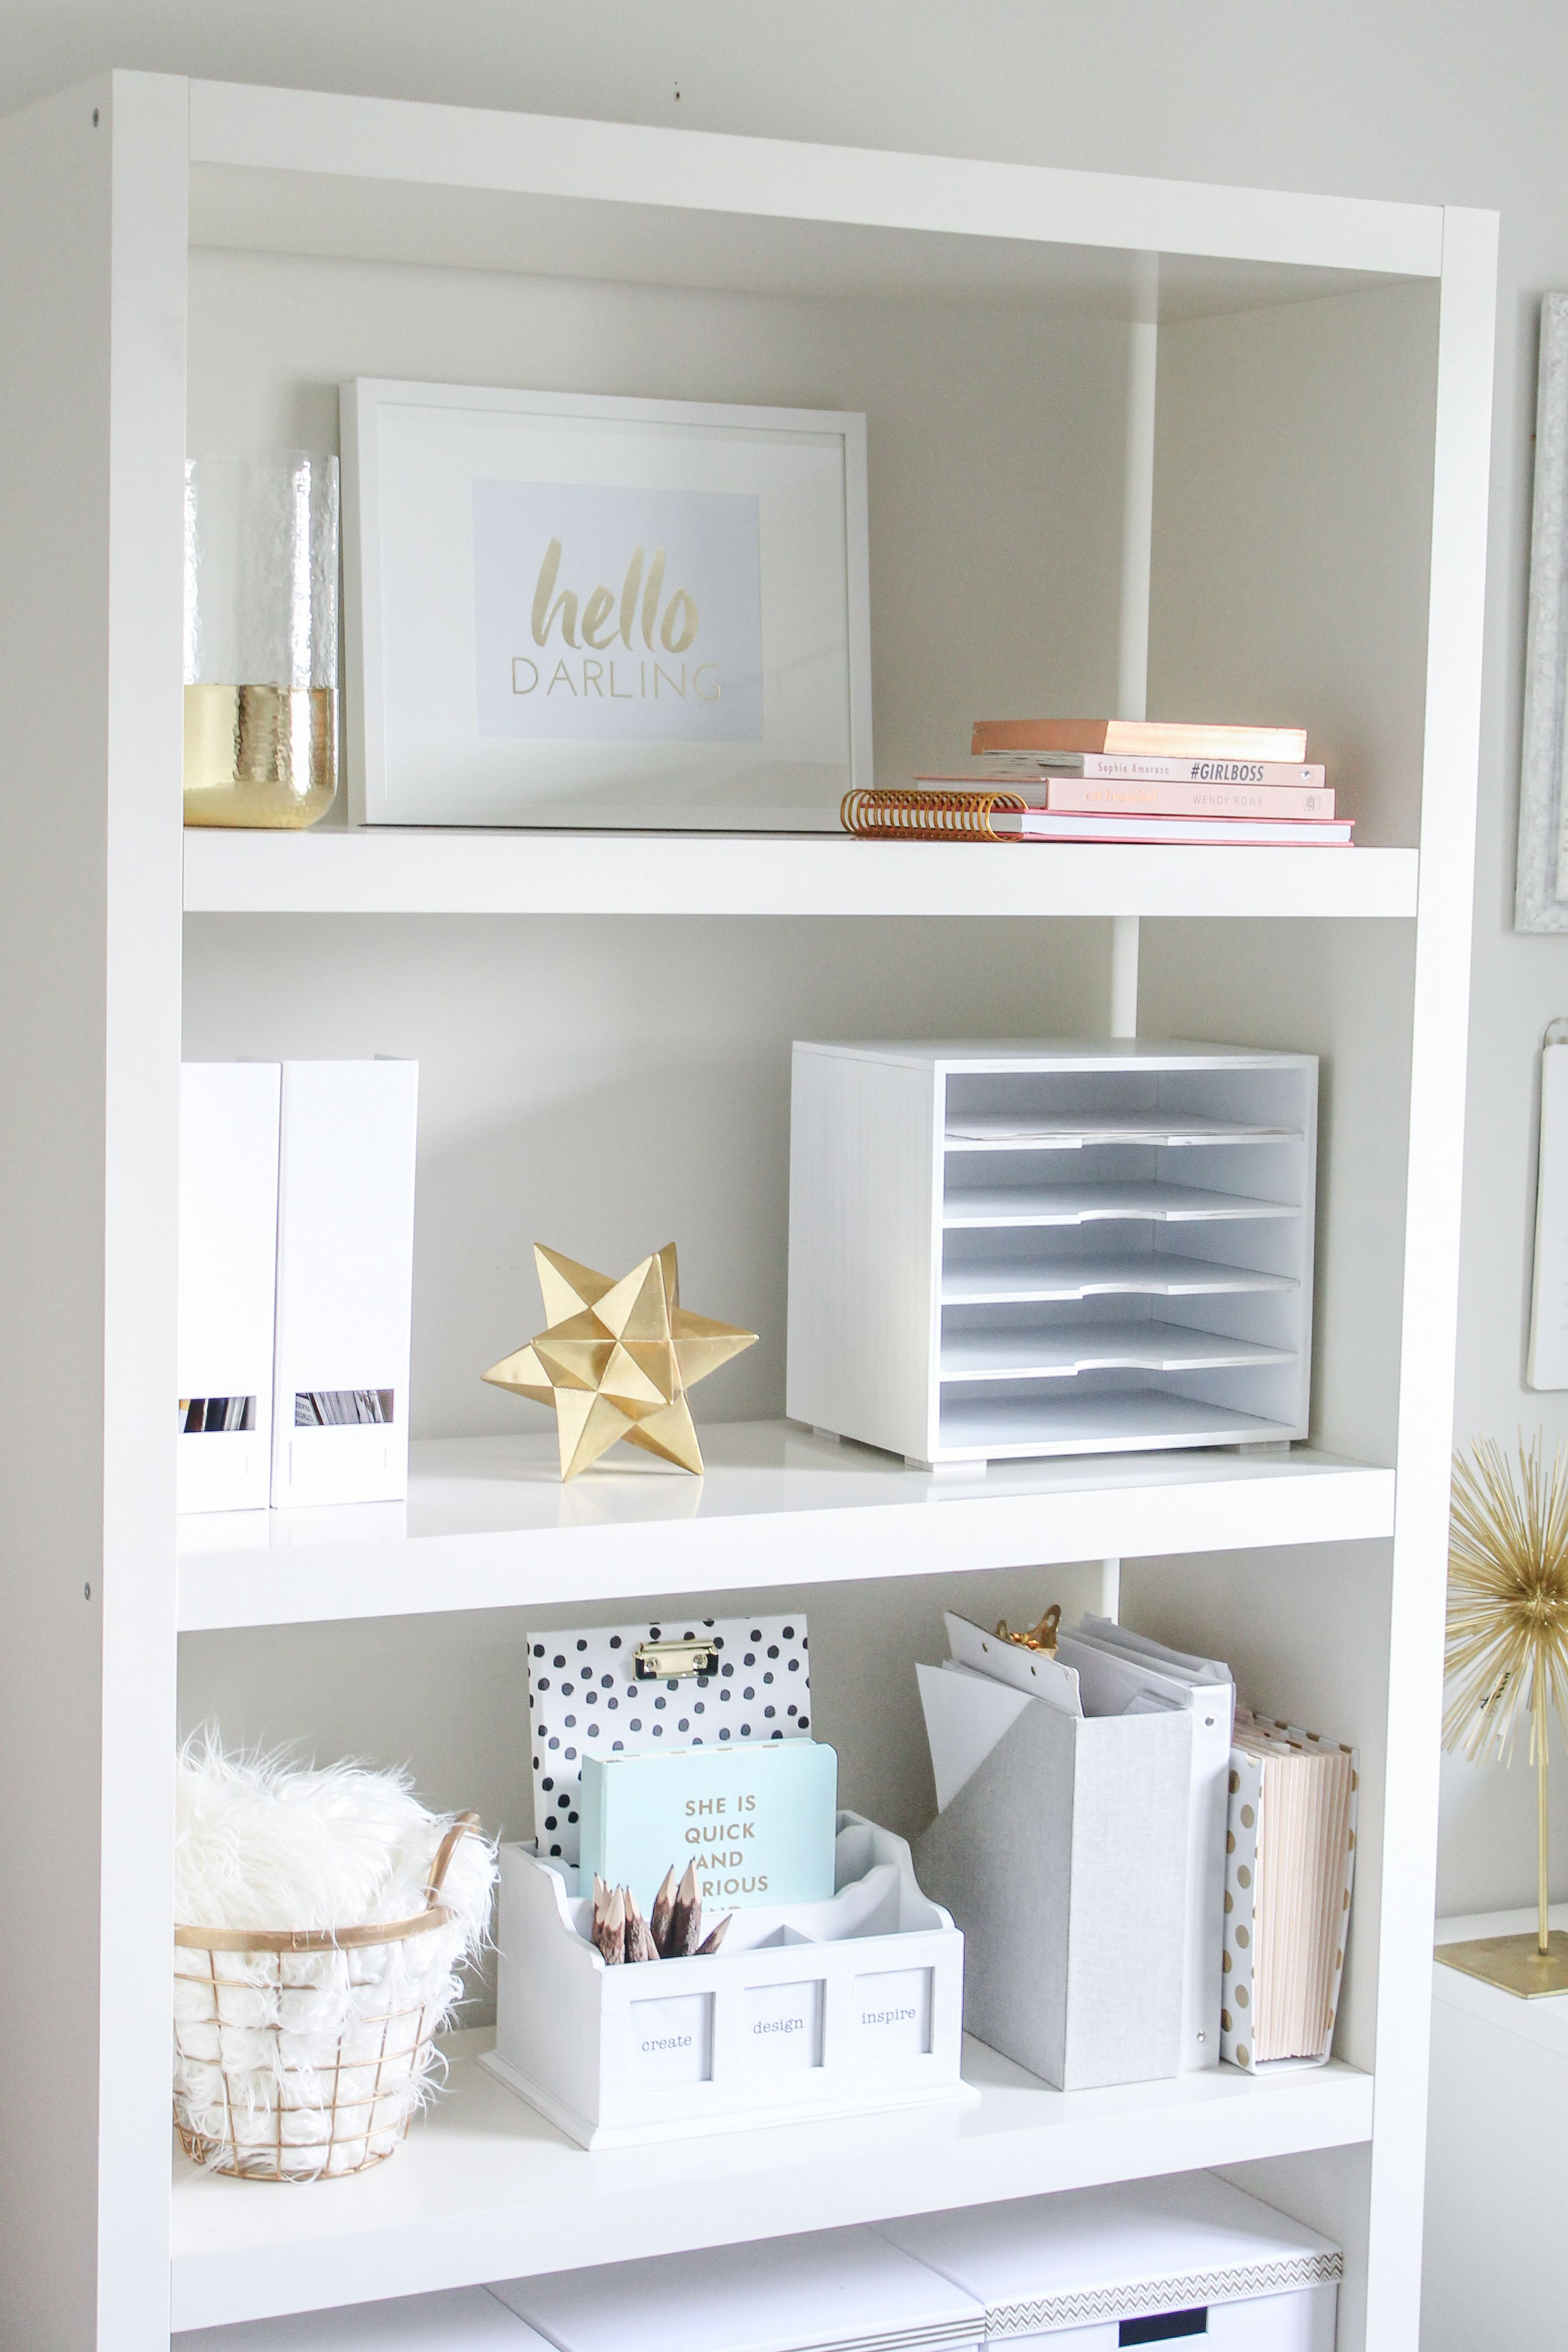 White with gold office looks very calming! - Tap the link now to Learn how I made it to 1 million in sales in 5 months with e-commerce! I'll give you the 3 advertising phases I did to make it for FREE! -   22 desk decor shelves